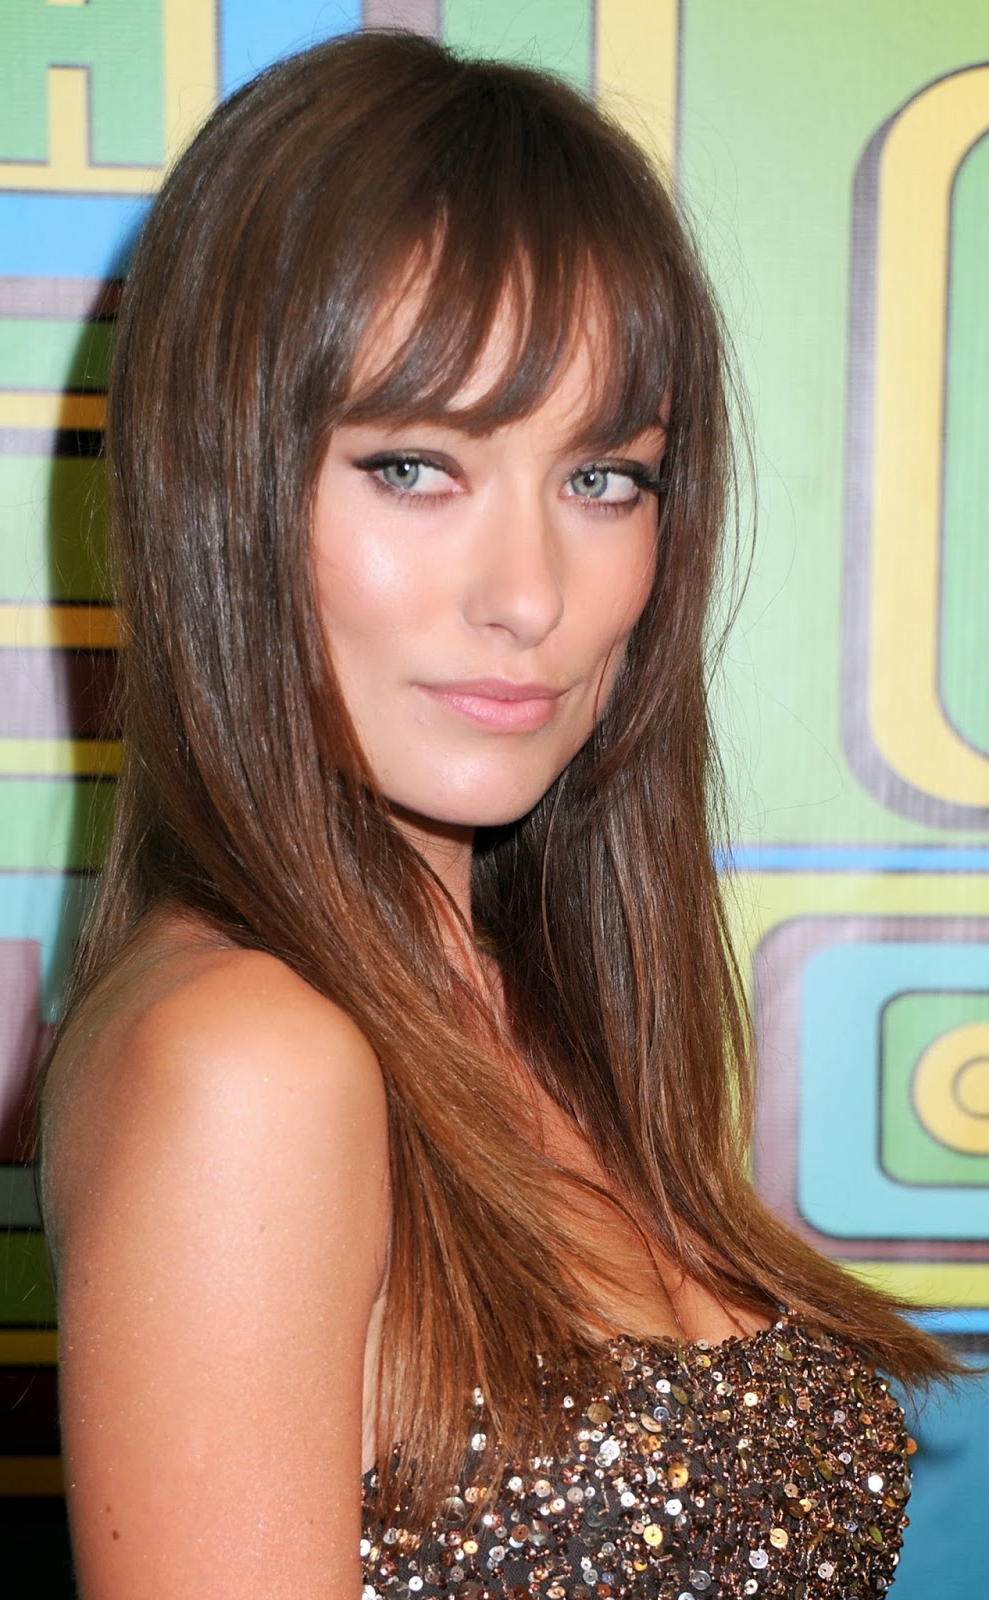 The Best Bangs For A Square Face Shape – Hair World Magazine Within Current Medium Hairstyles For Square Faces With Bangs (View 7 of 20)